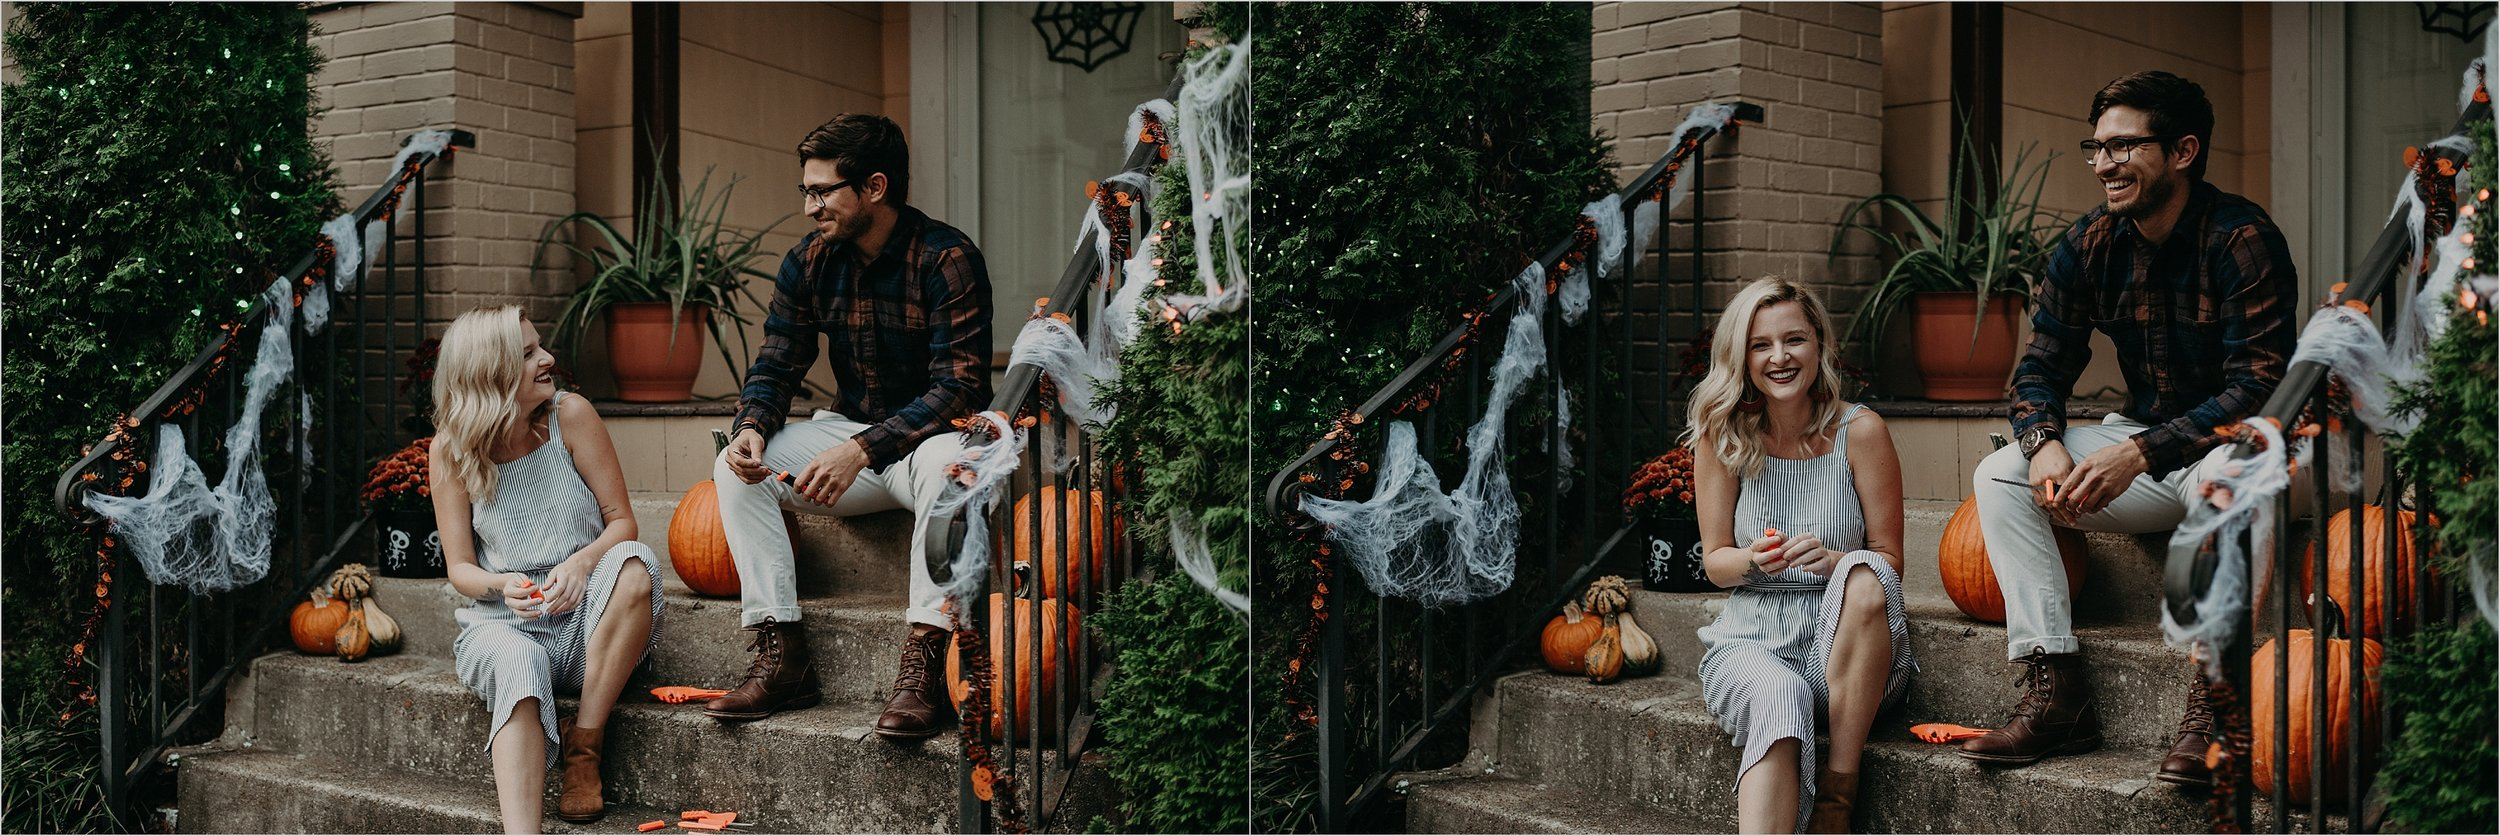 Taylor_English_Photography_Pumpkin_Carving_Chattanooga_Tennessee_0005.jpg